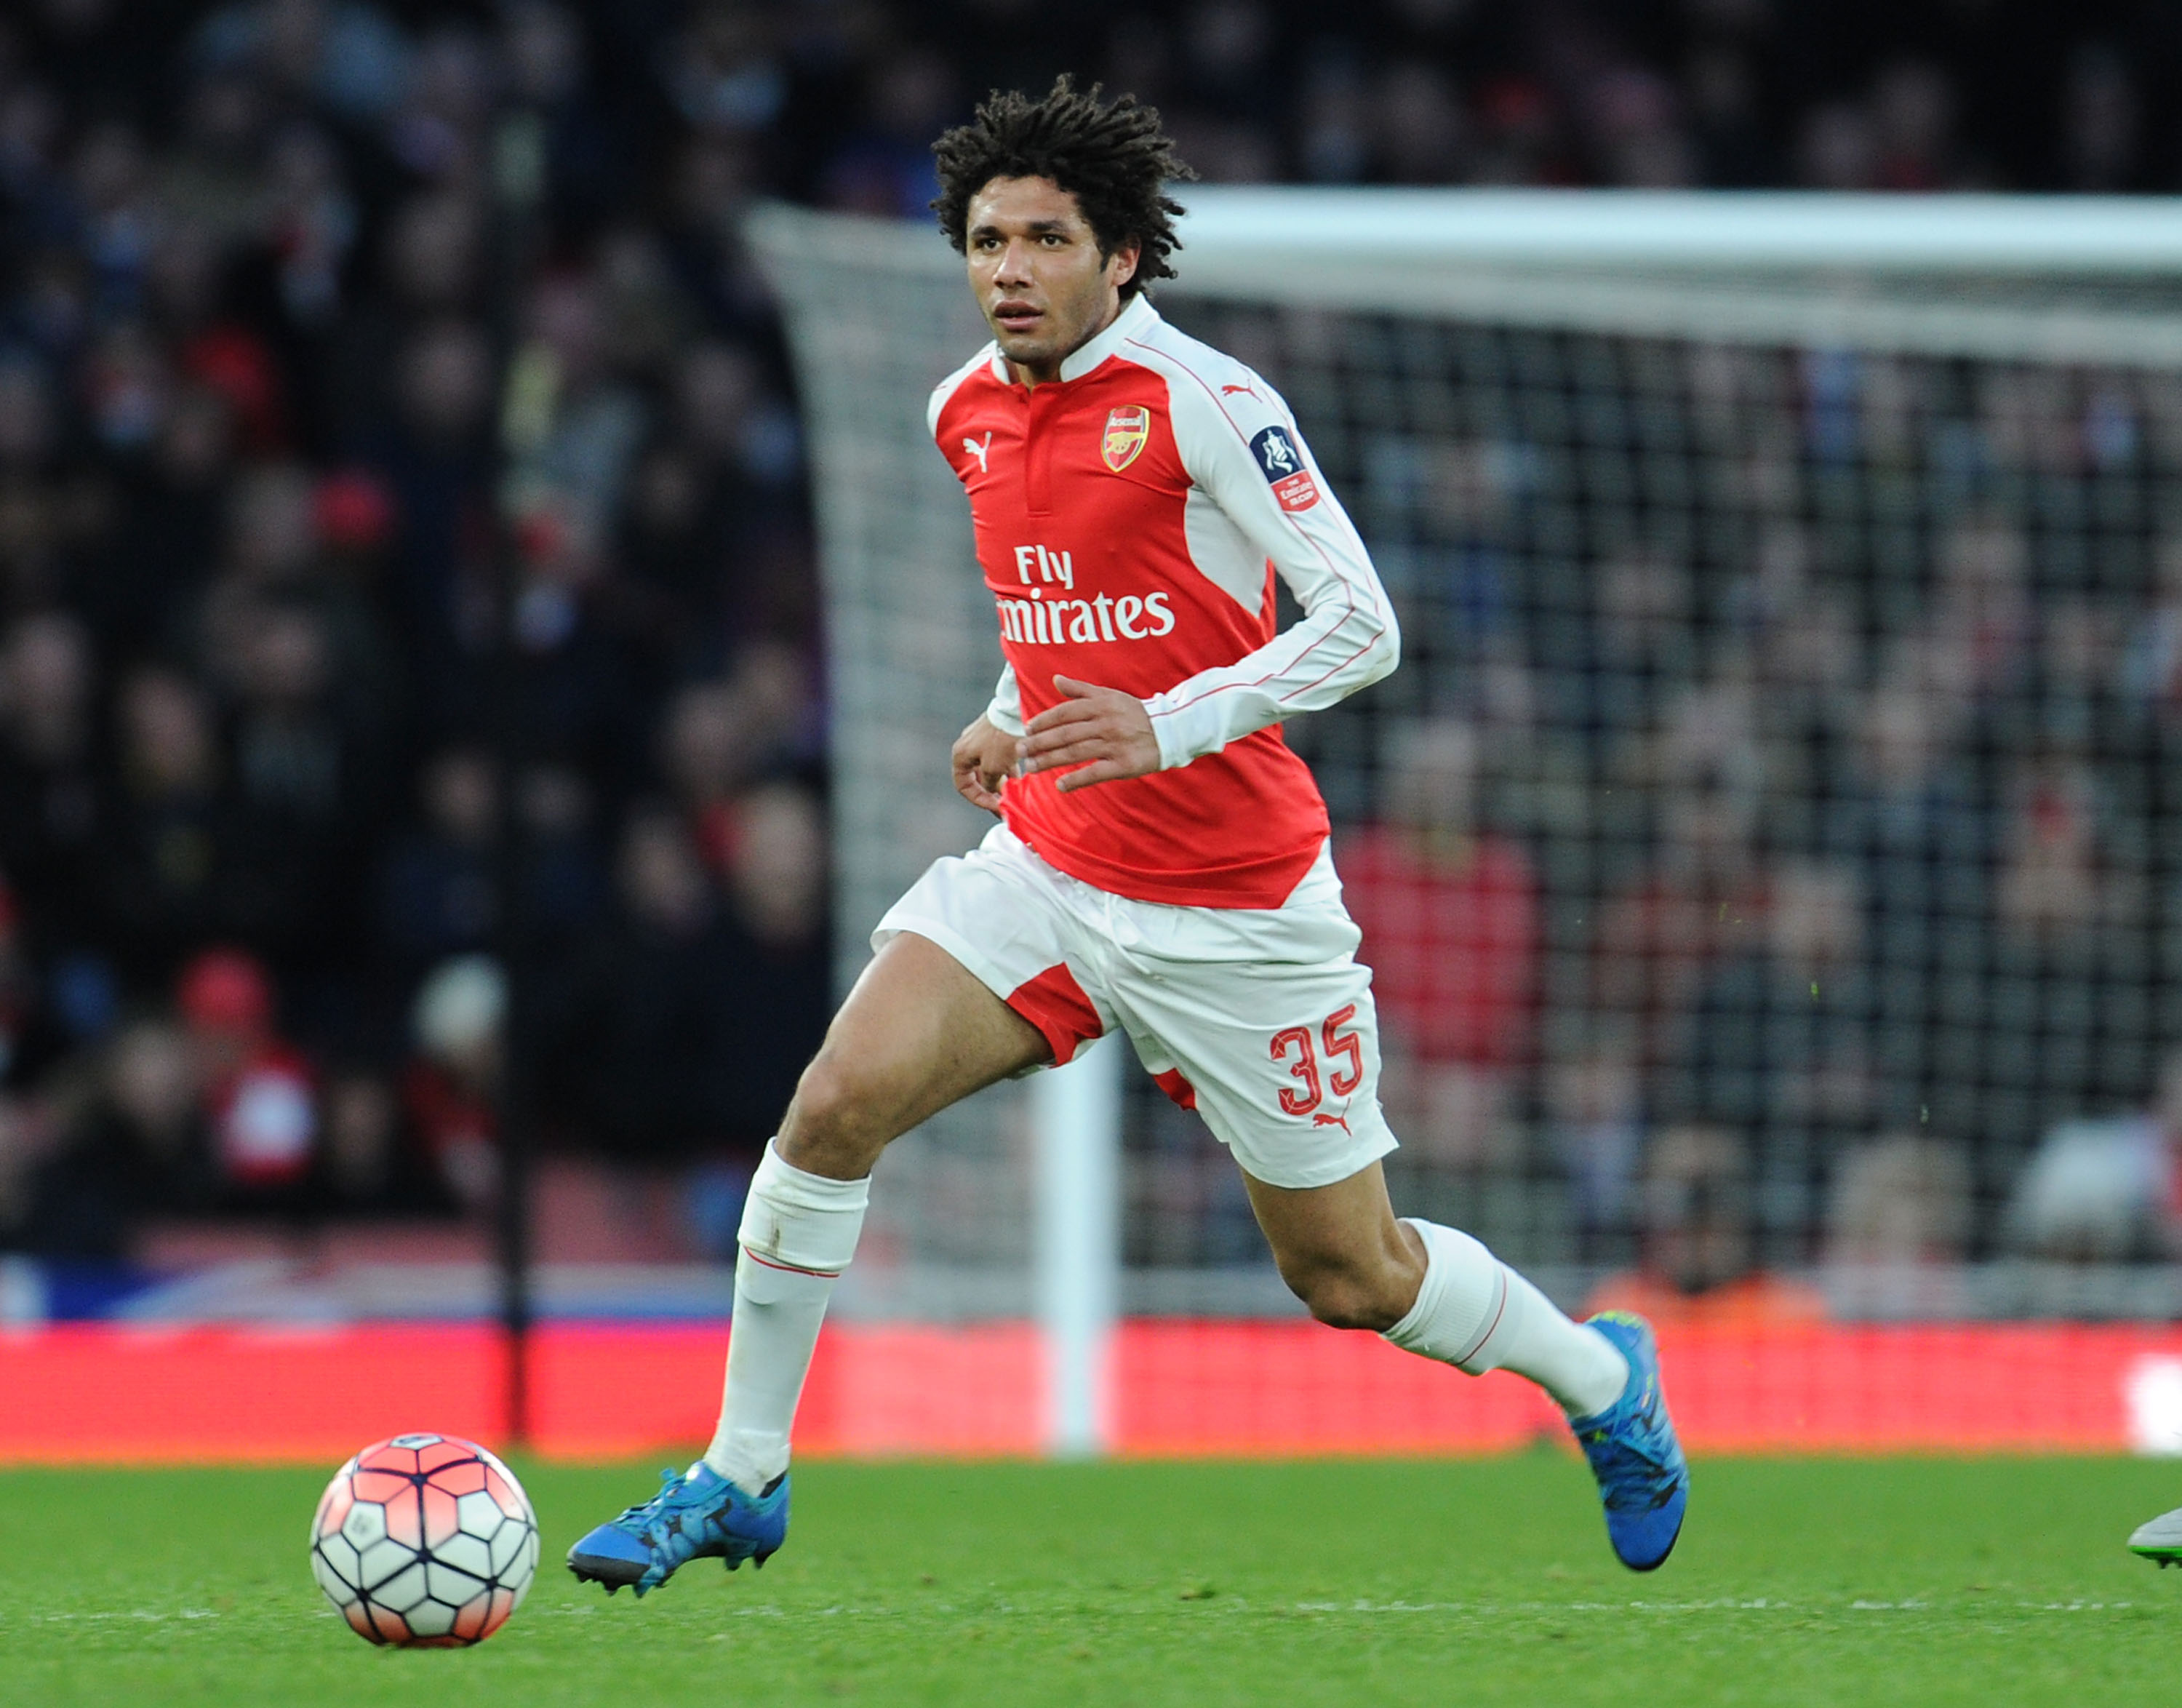 New Arsenal signing Mohamed Elneny is already planning FA Cup grudge match